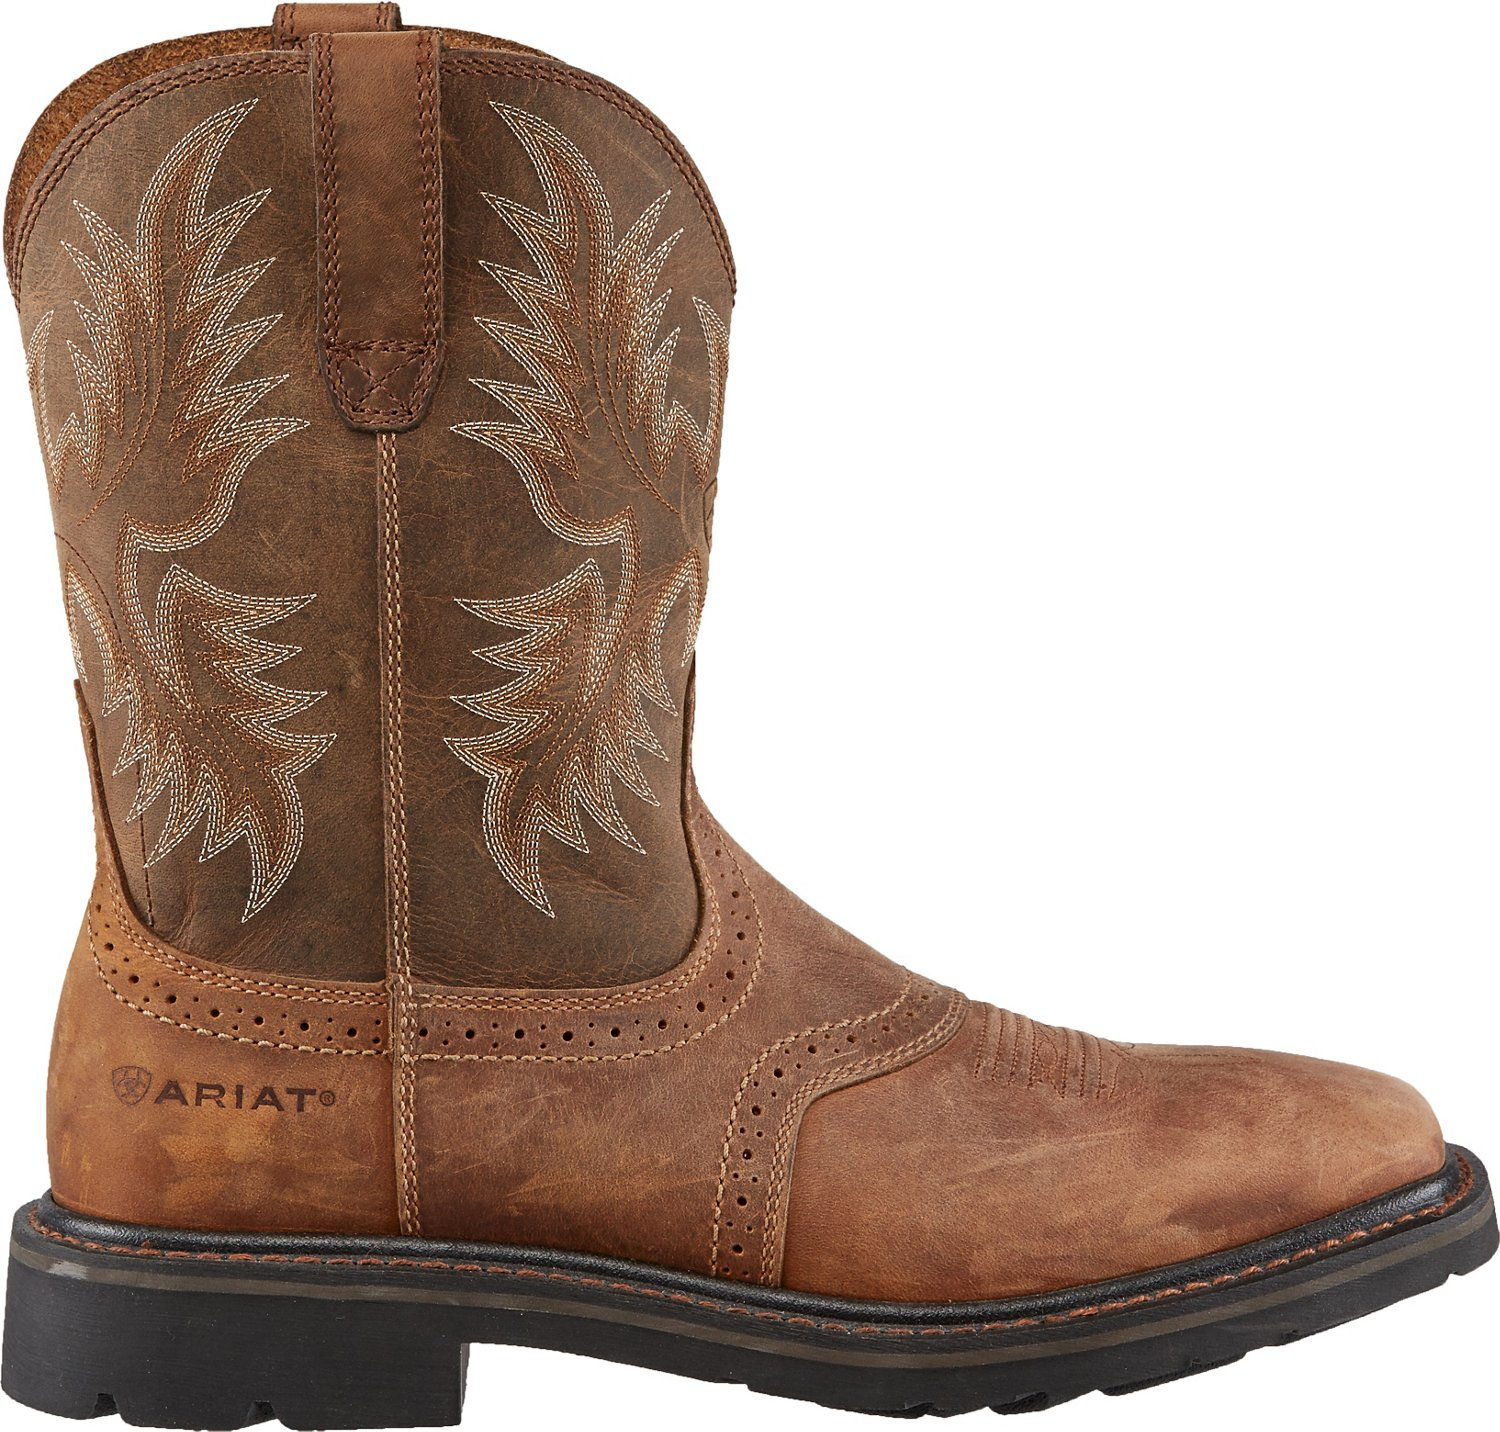 3a57fd746a16 Display product reviews for Ariat Men s Sierra Square Toe Work Boots